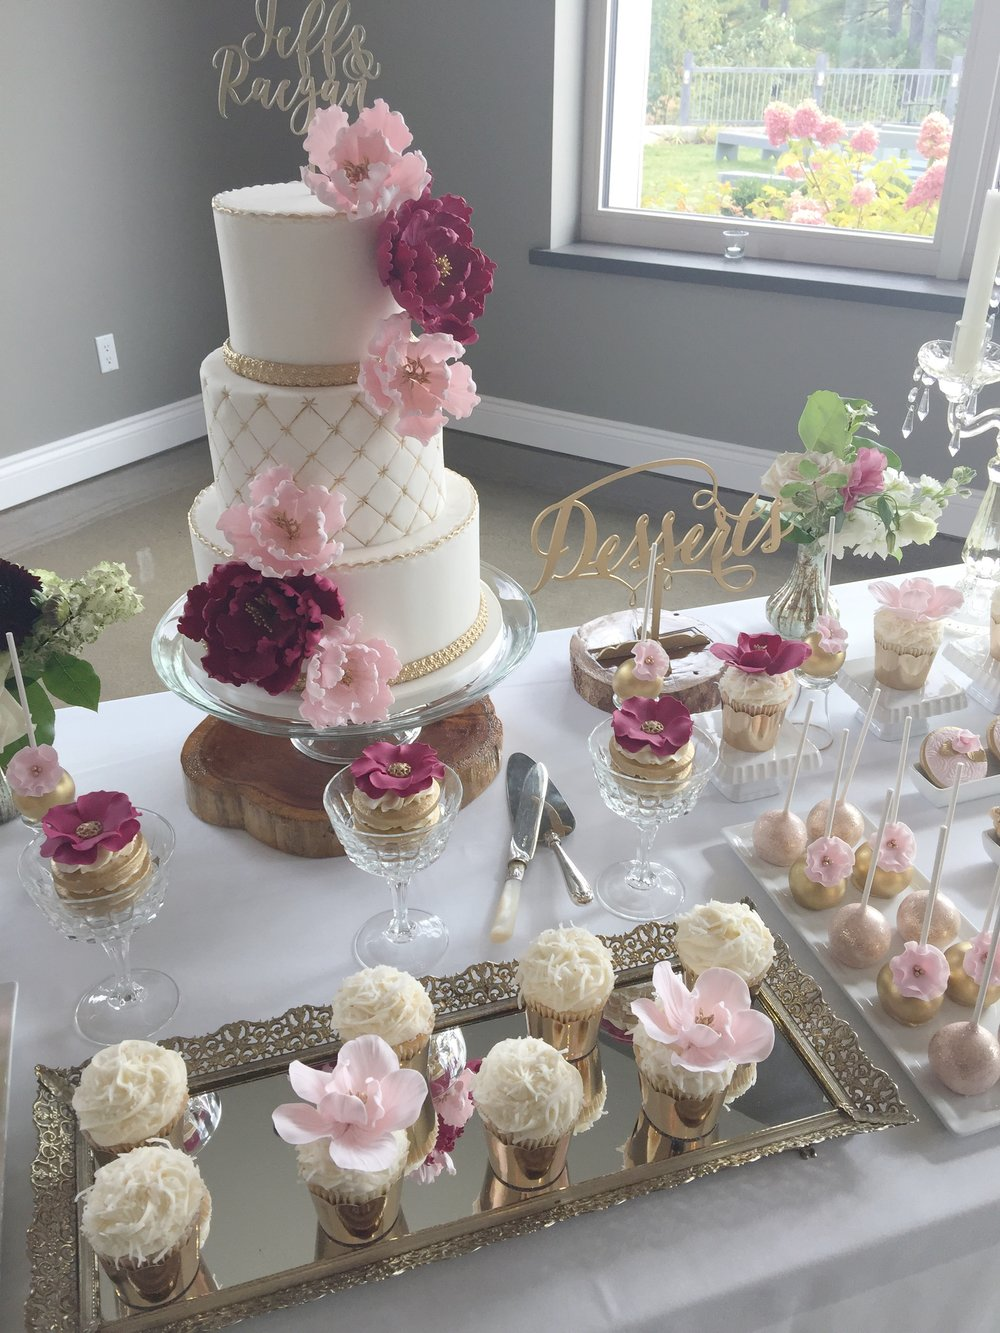 Toast Events Ottawa Wedding Planning with Osso Sweet and Osso Beautiful